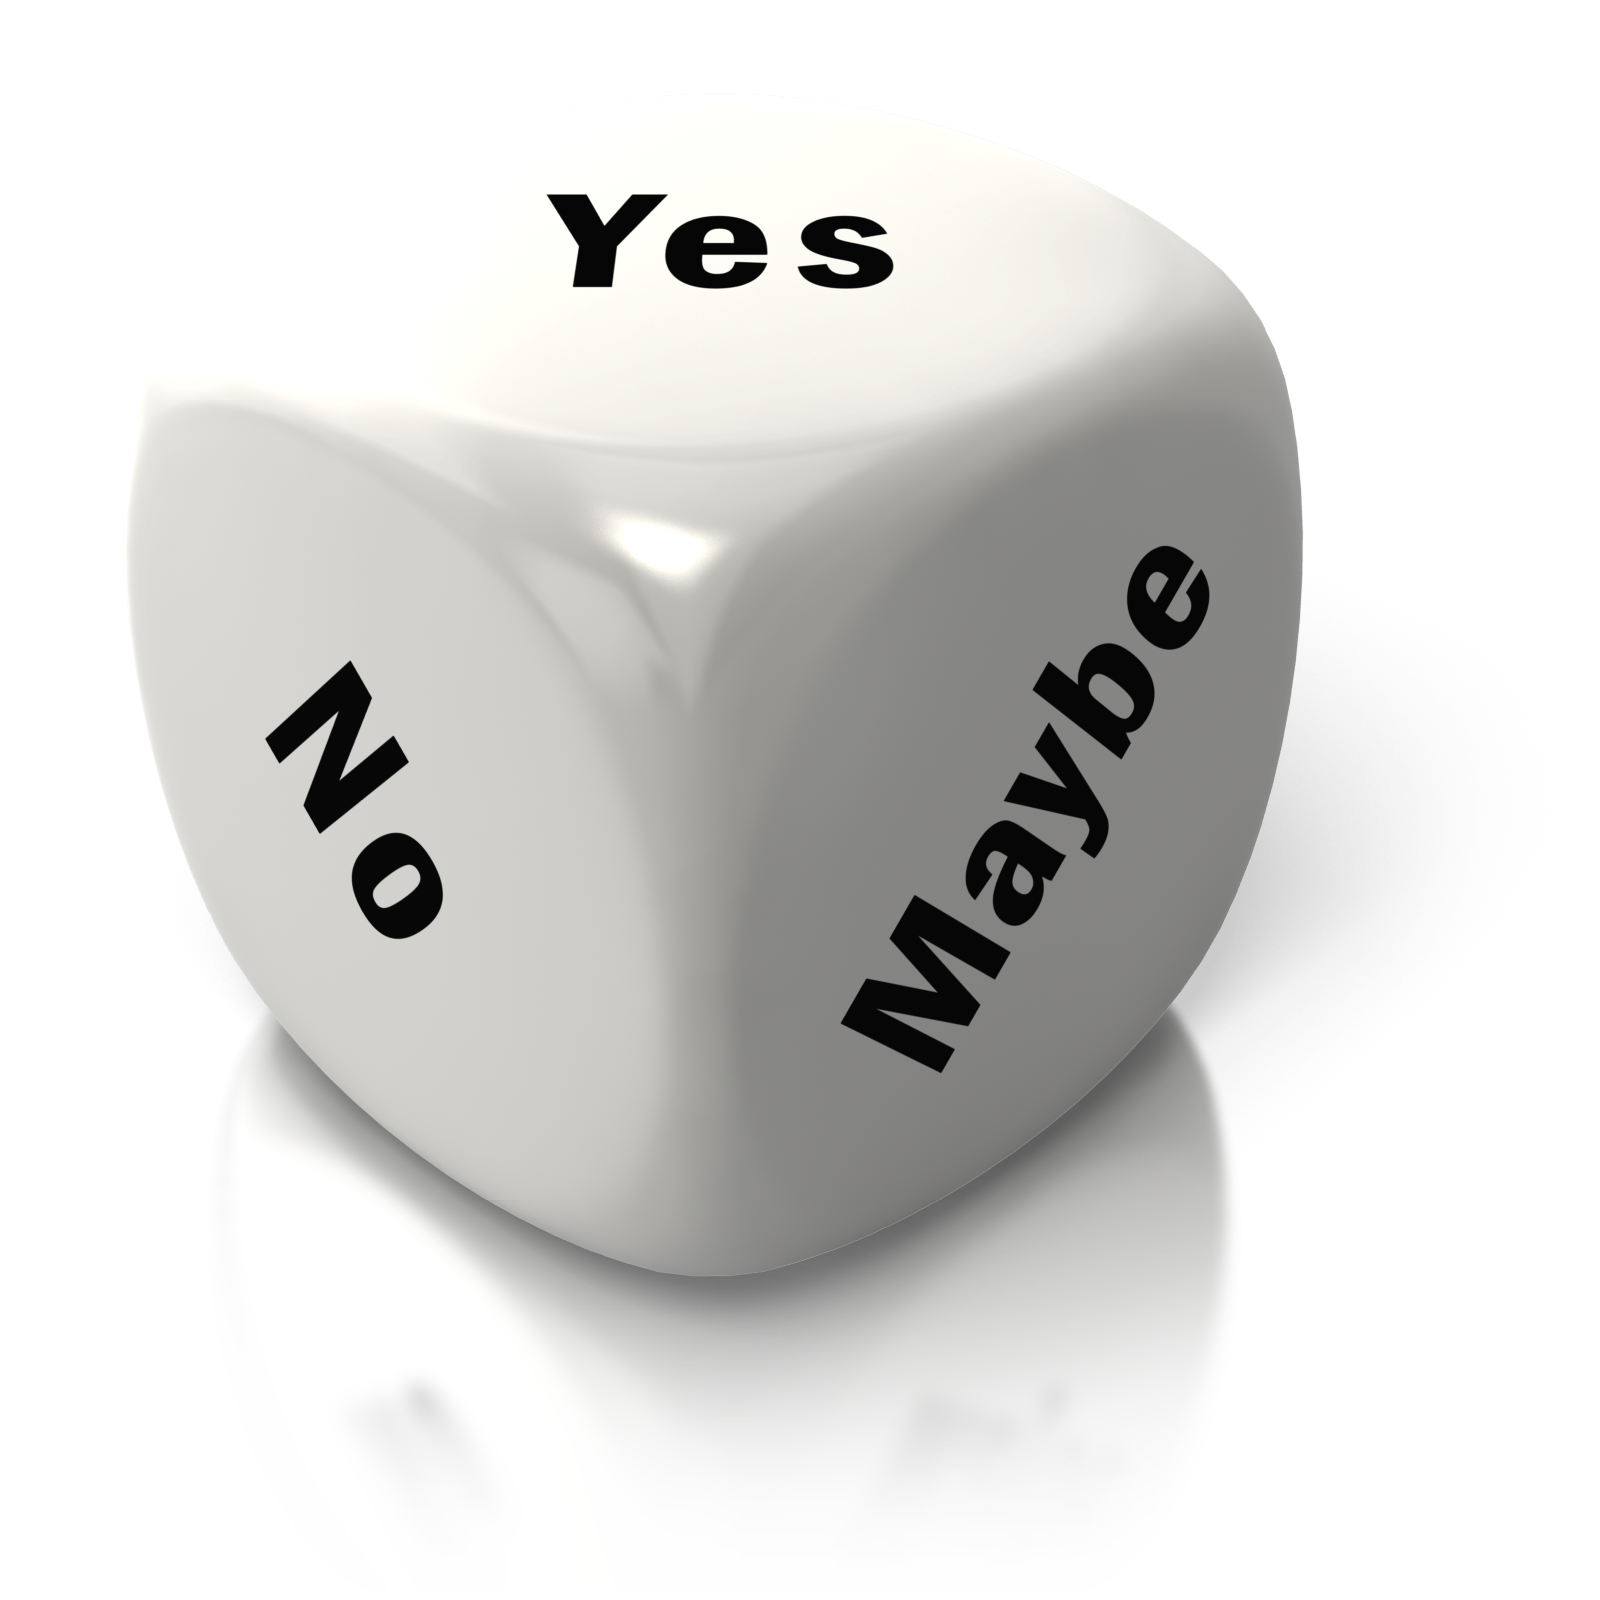 yes_no_maybe_white_dice_1600_clr_2630